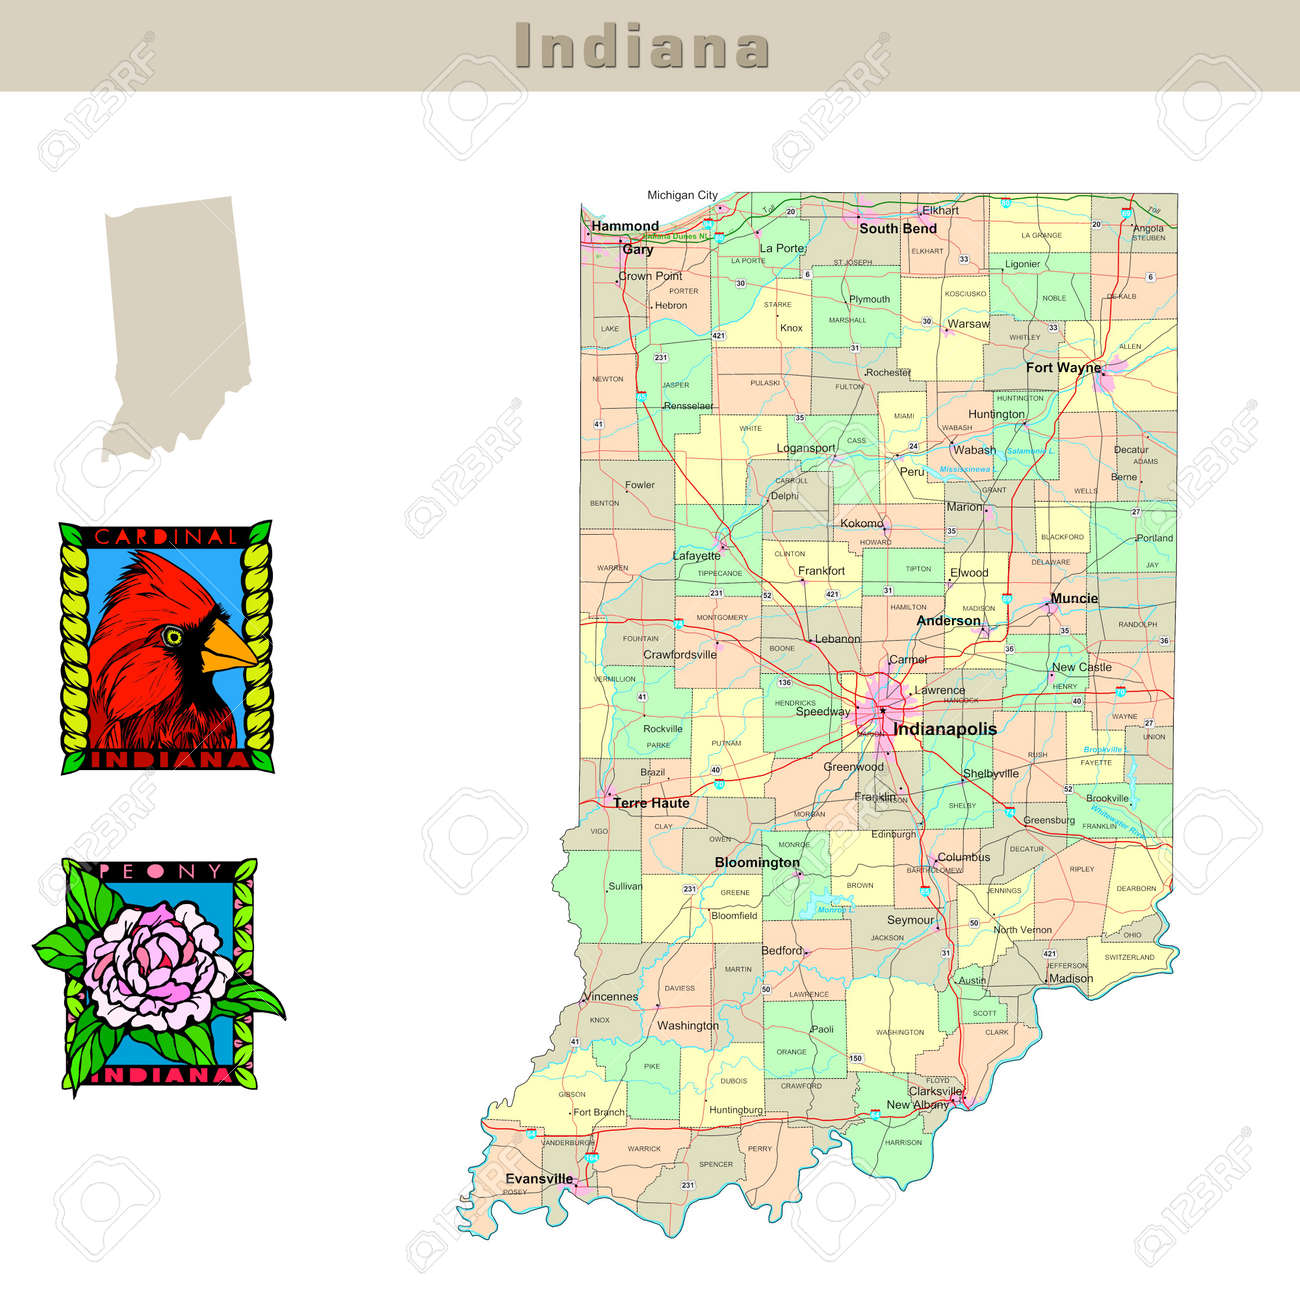 USA States Series Indiana Political Map With Counties Roads - Indiana on a map of the usa